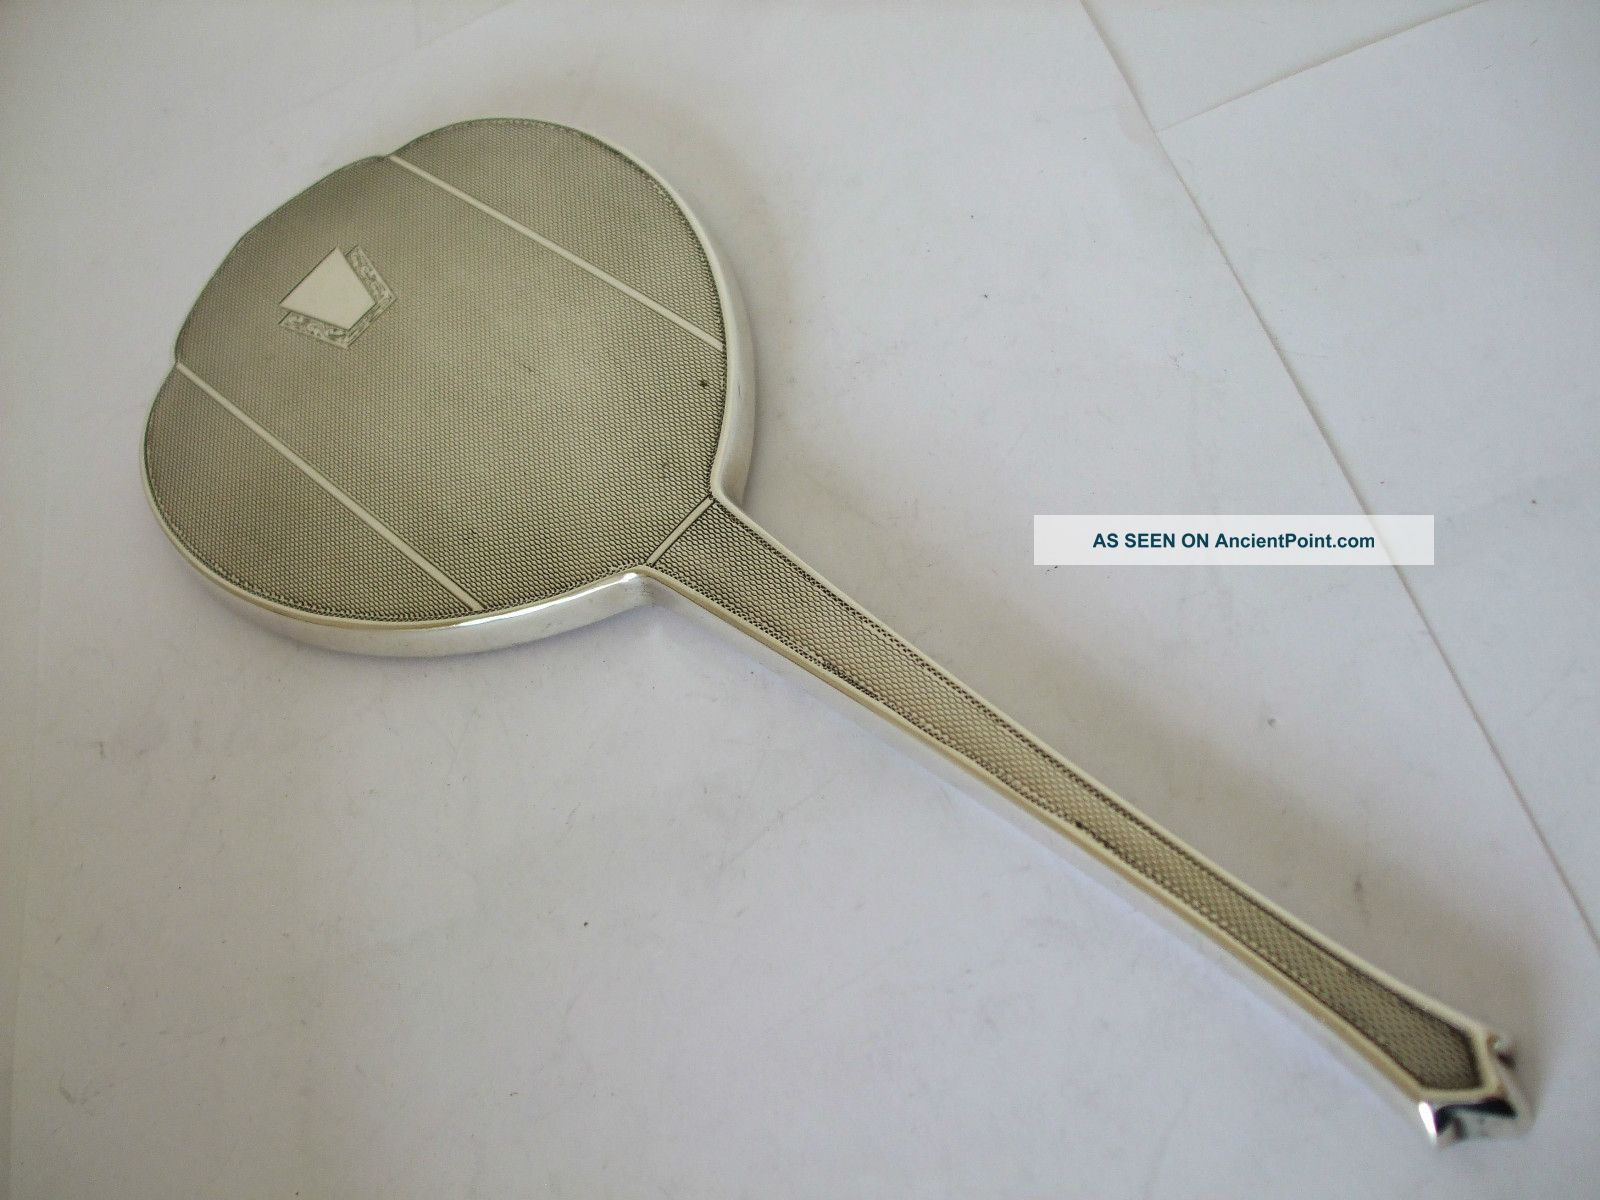 Vintage Silver Hand Mirror Engined Turned Art Deco Stepped Design Hm 1962 Mirrors photo